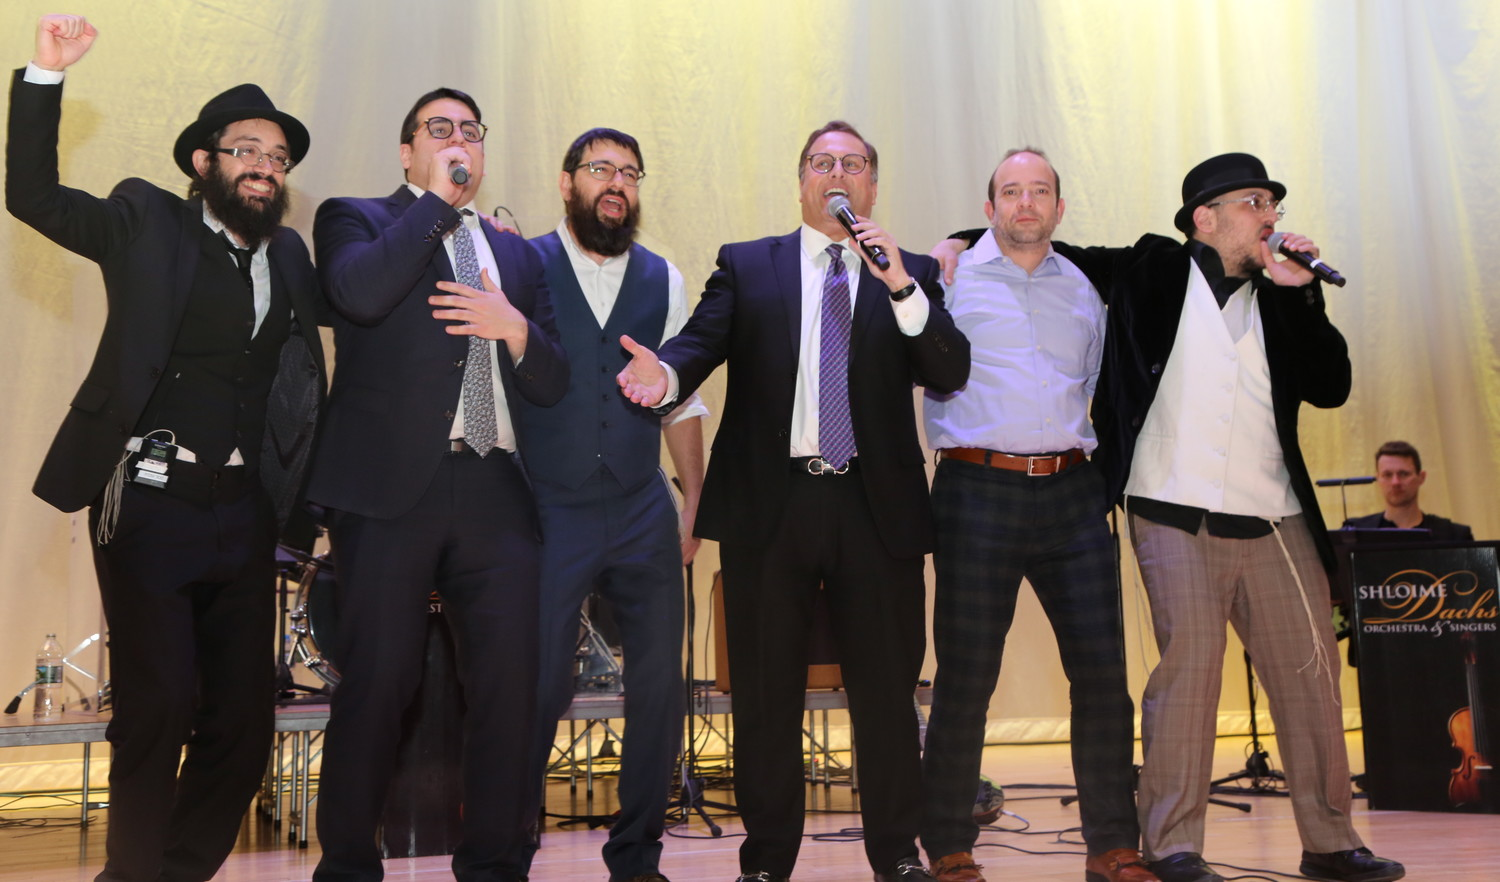 Lipa, Eighth Day, Uri Davidi and Shloime Dachs joined the finale at Cahal's benefit concert on Sunday.